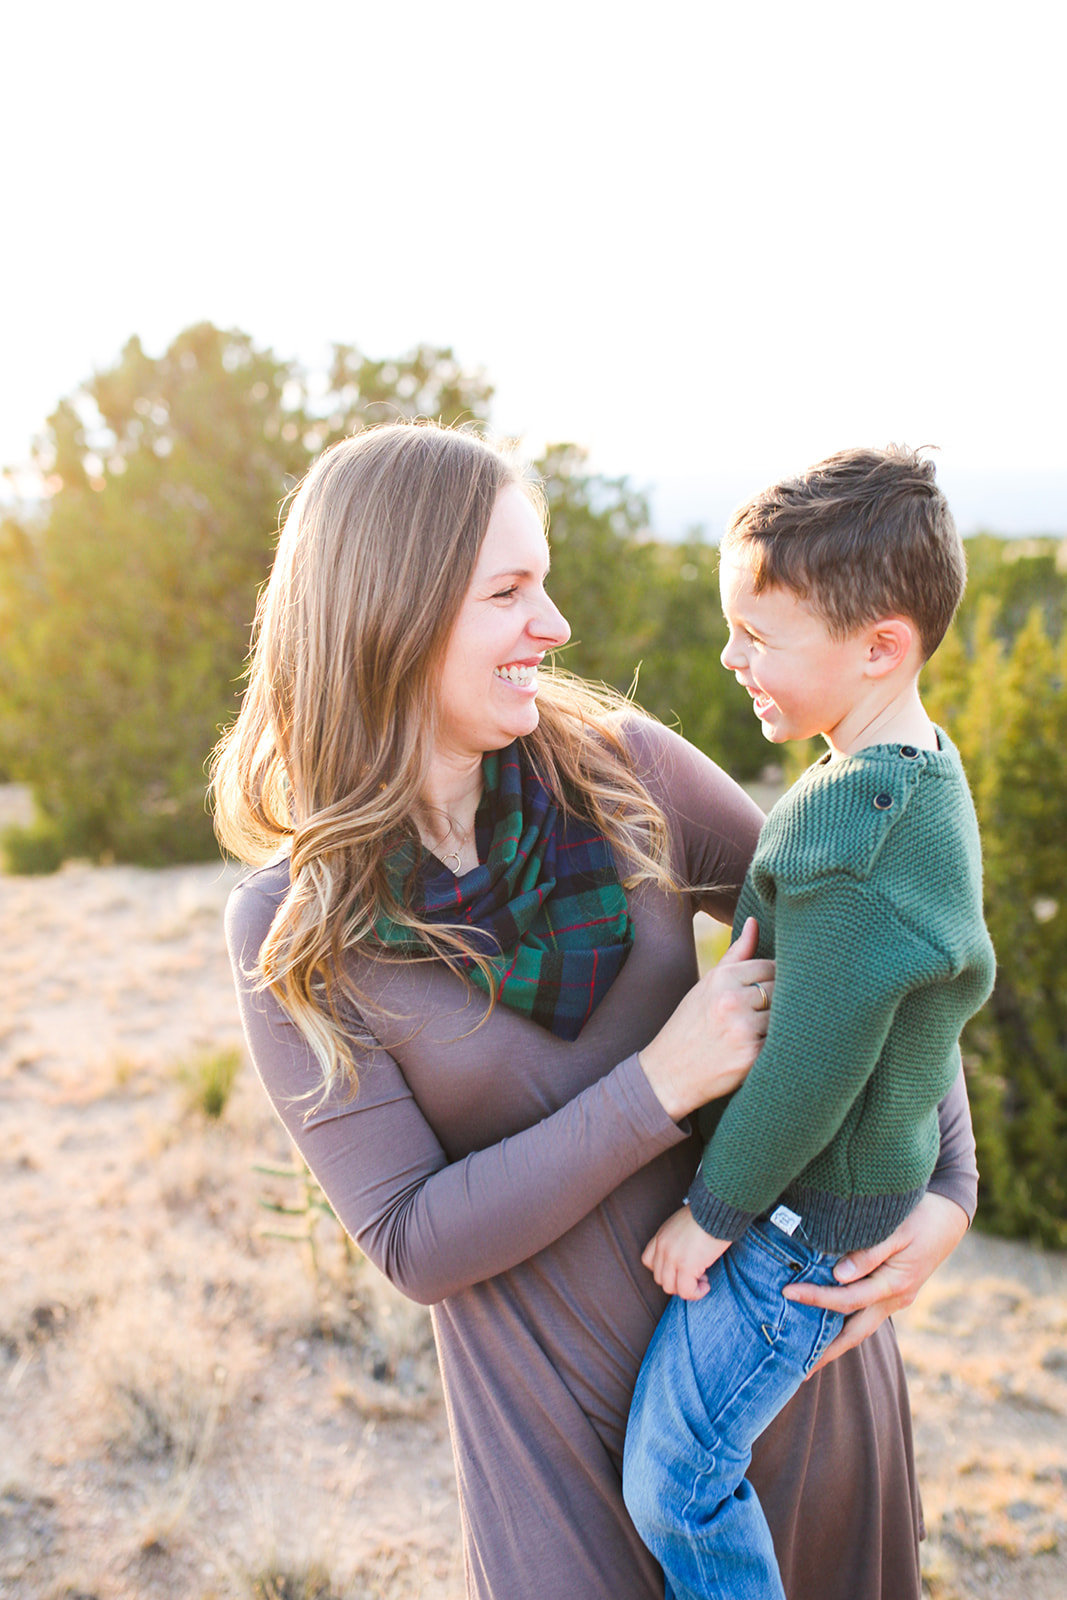 Albuquerque Family Photography_Foothills_www.tylerbrooke.com_Kate Kauffman_032